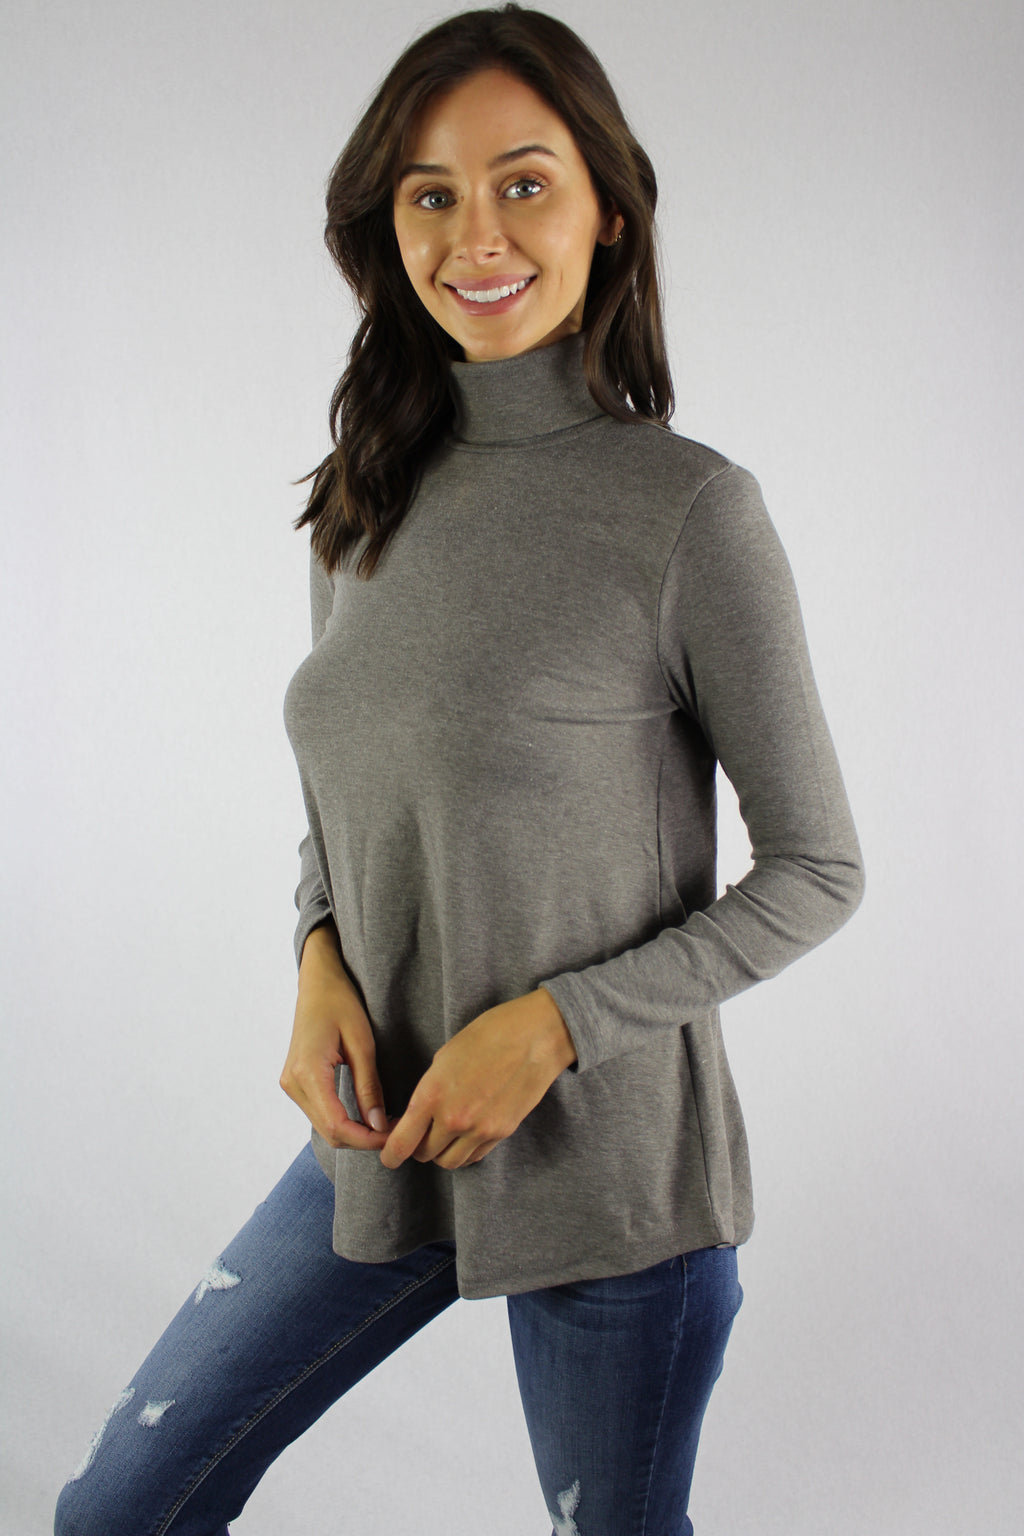 Women's Turtleneck Long Sleeve Top